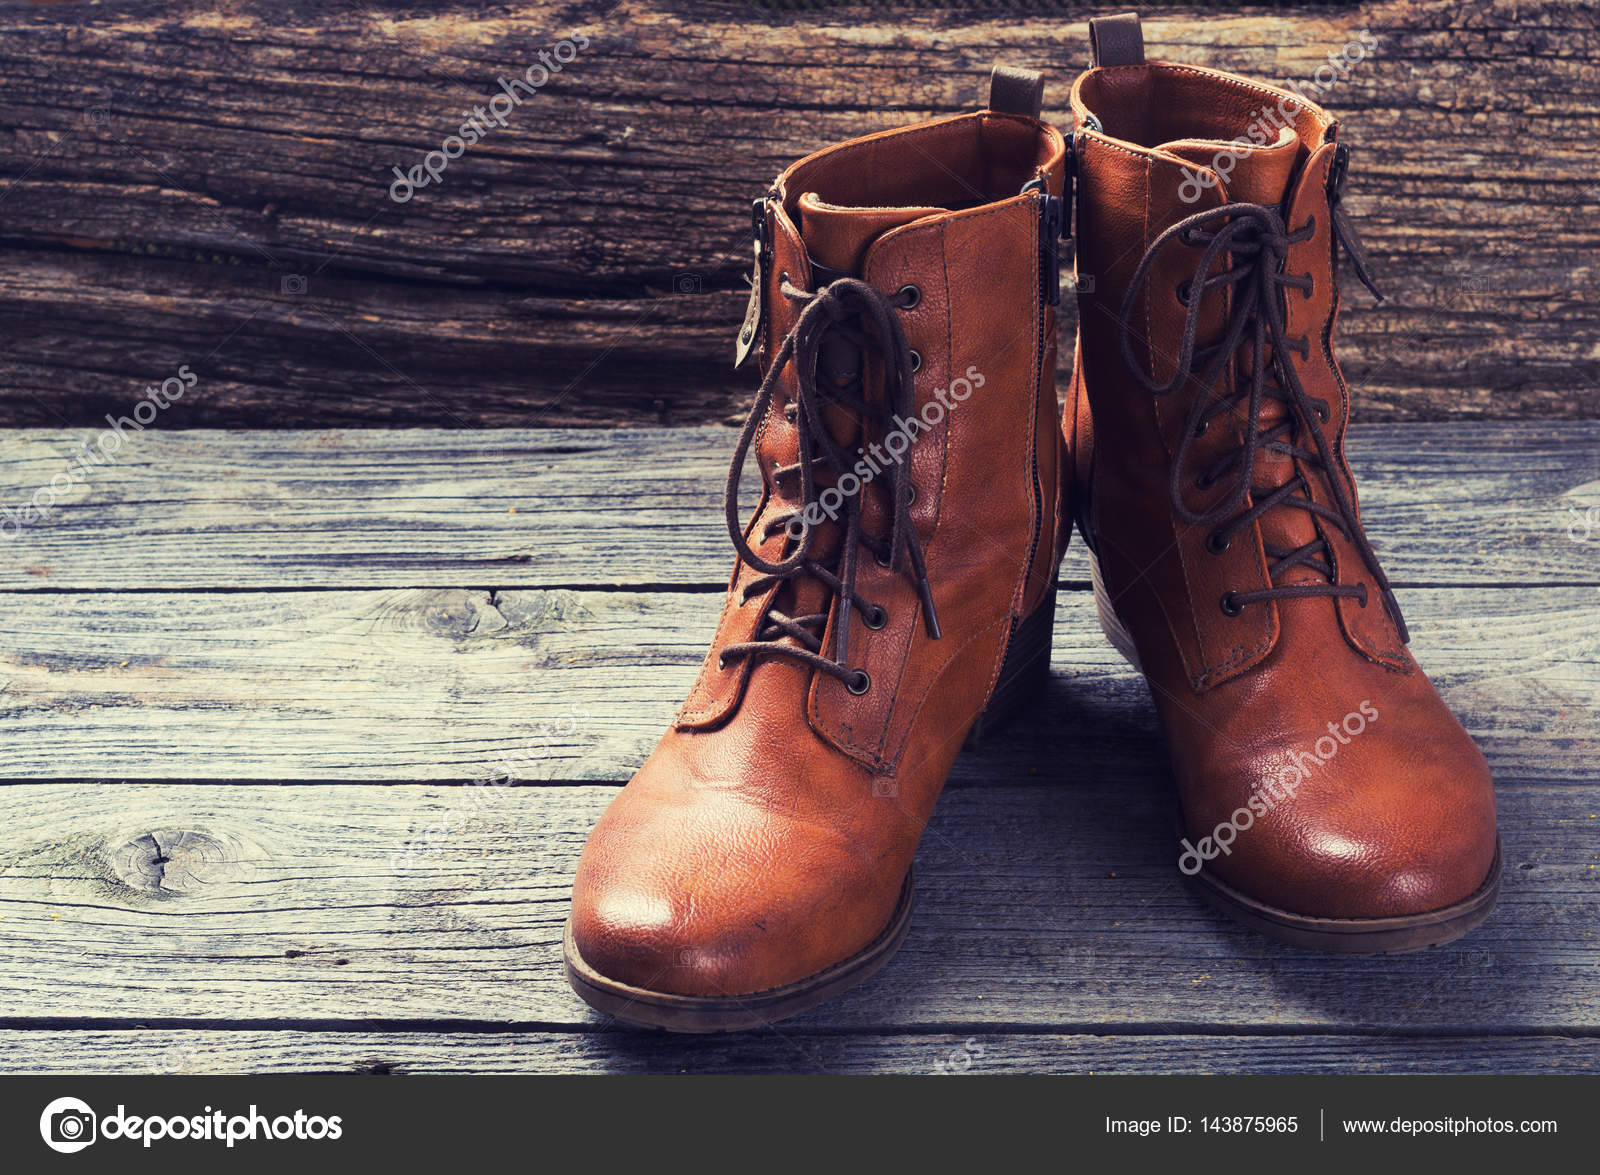 wholesale dealer 58f94 1fc27 Braune Damenstiefel — Stockfoto © whitestorm4 #143875965